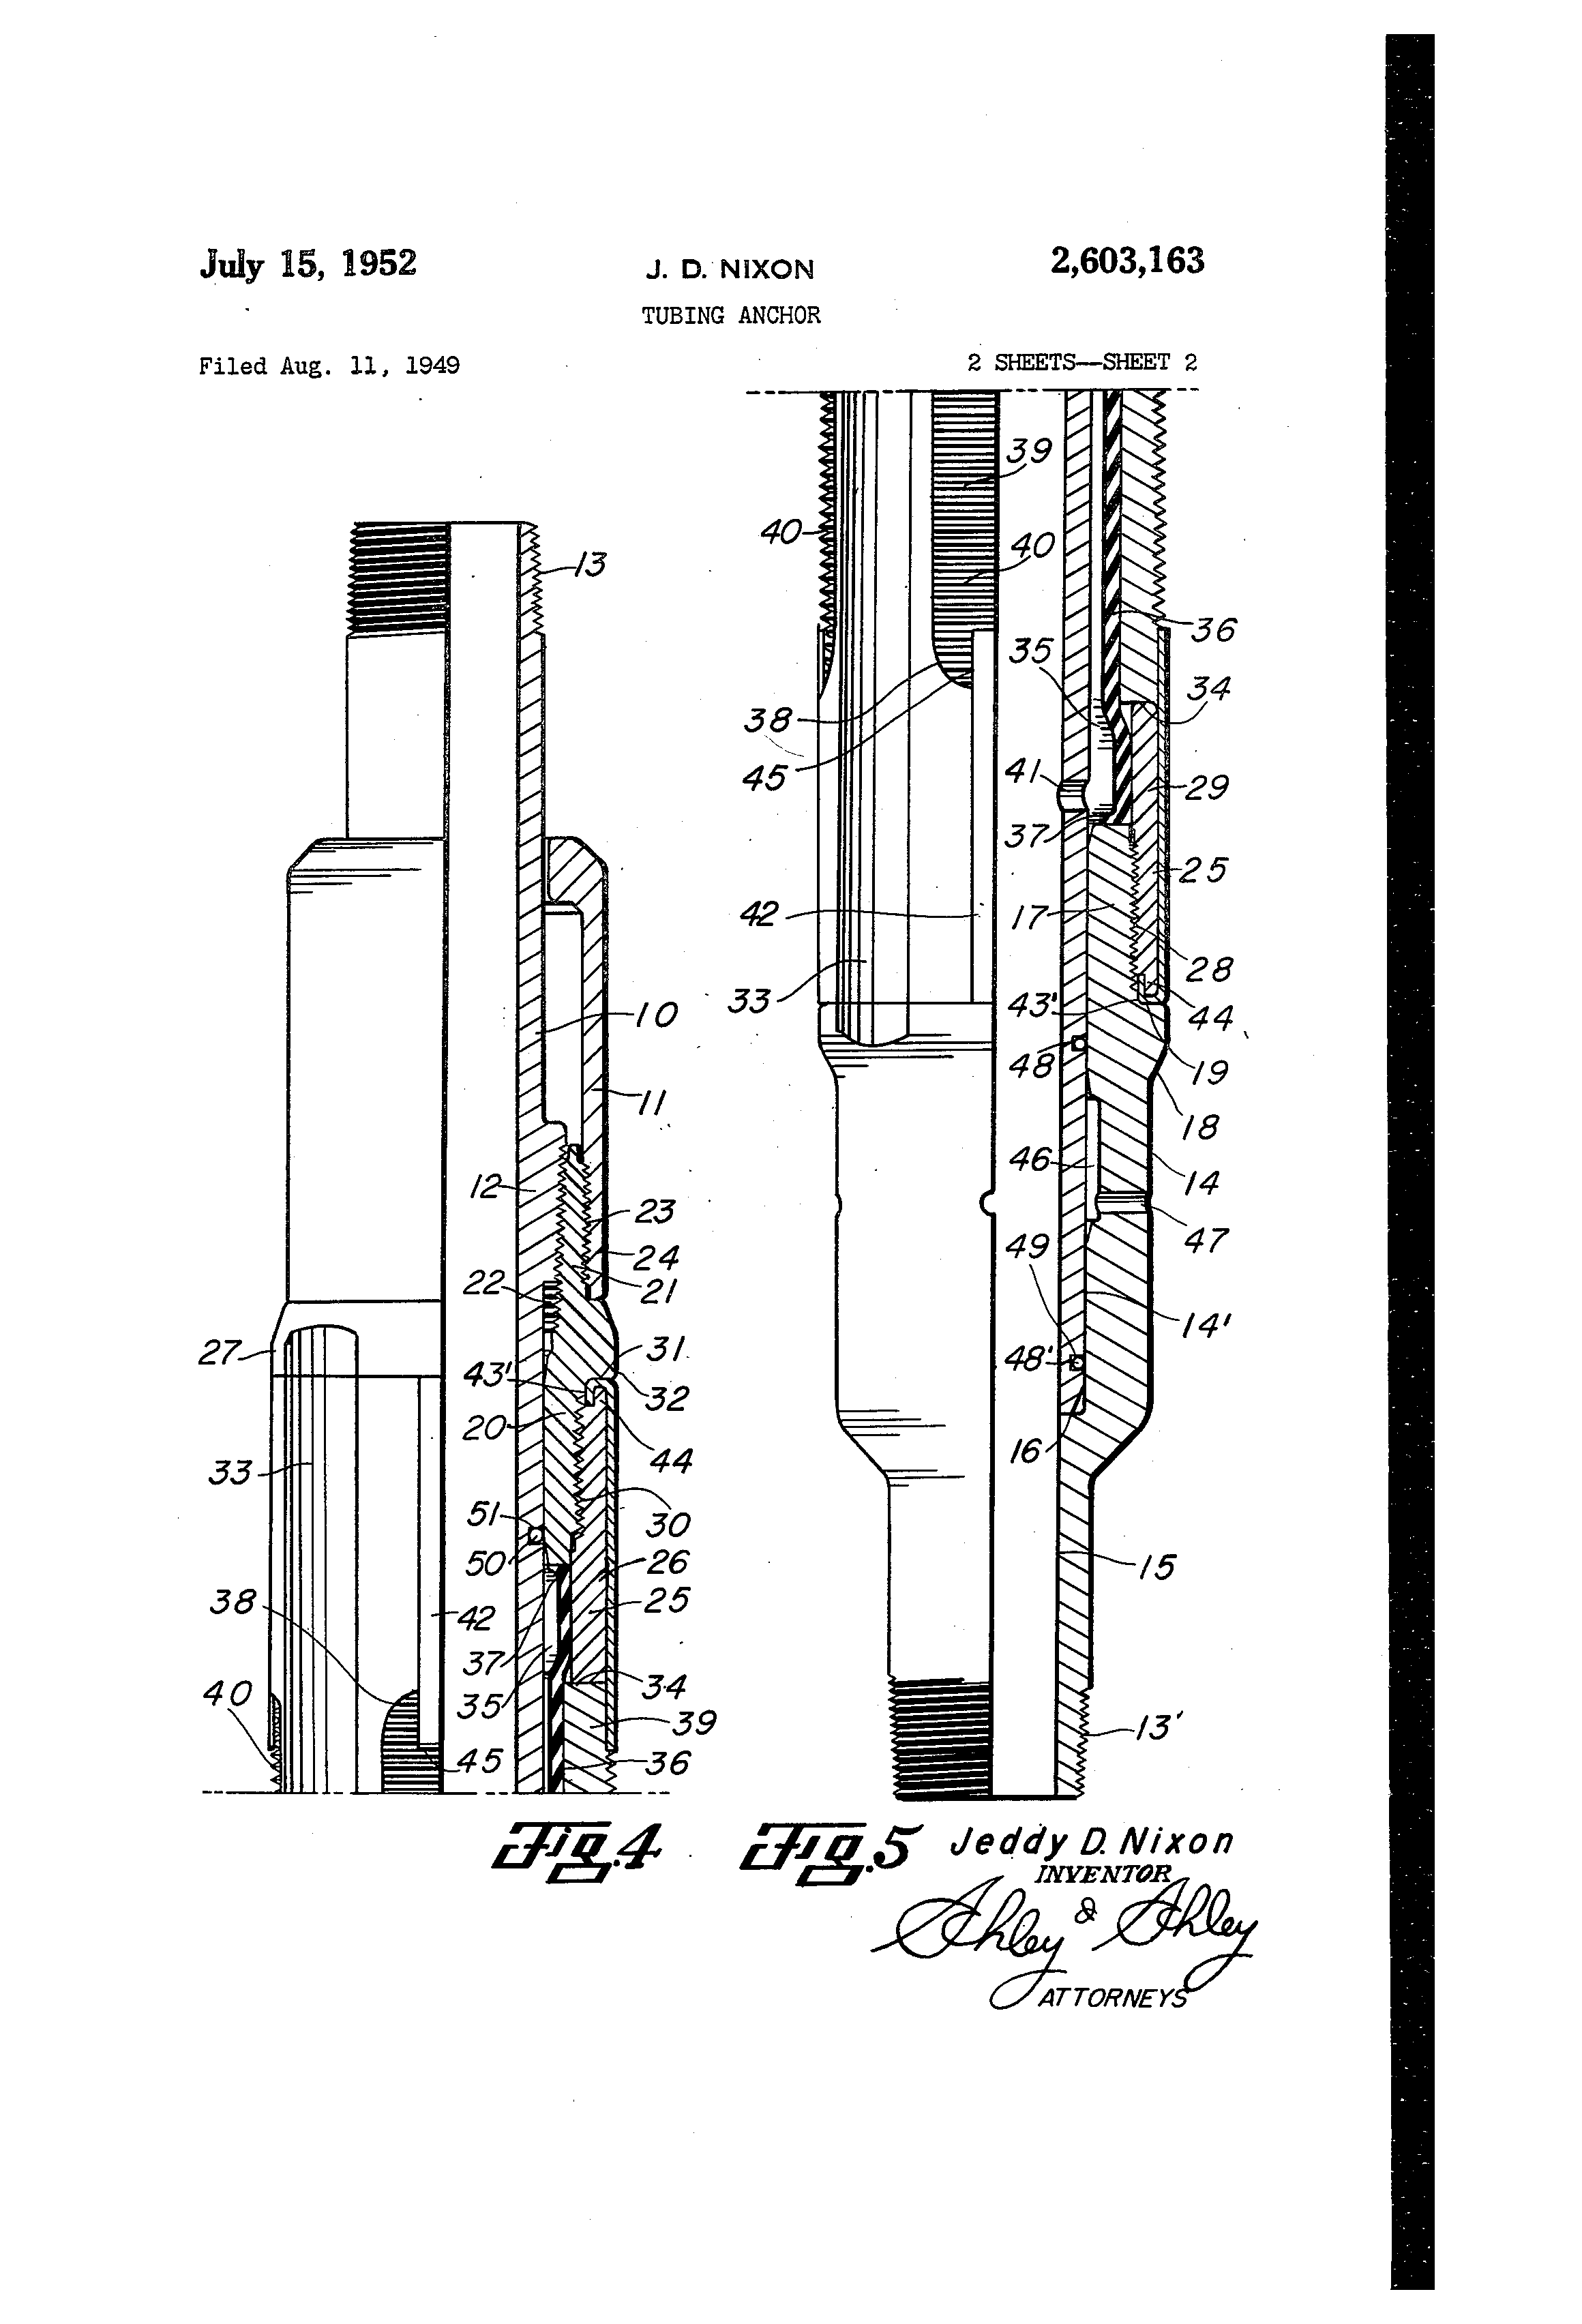 Patent US2603163 - Tubing anchor - Jul 15, 1952 | Sci Tech